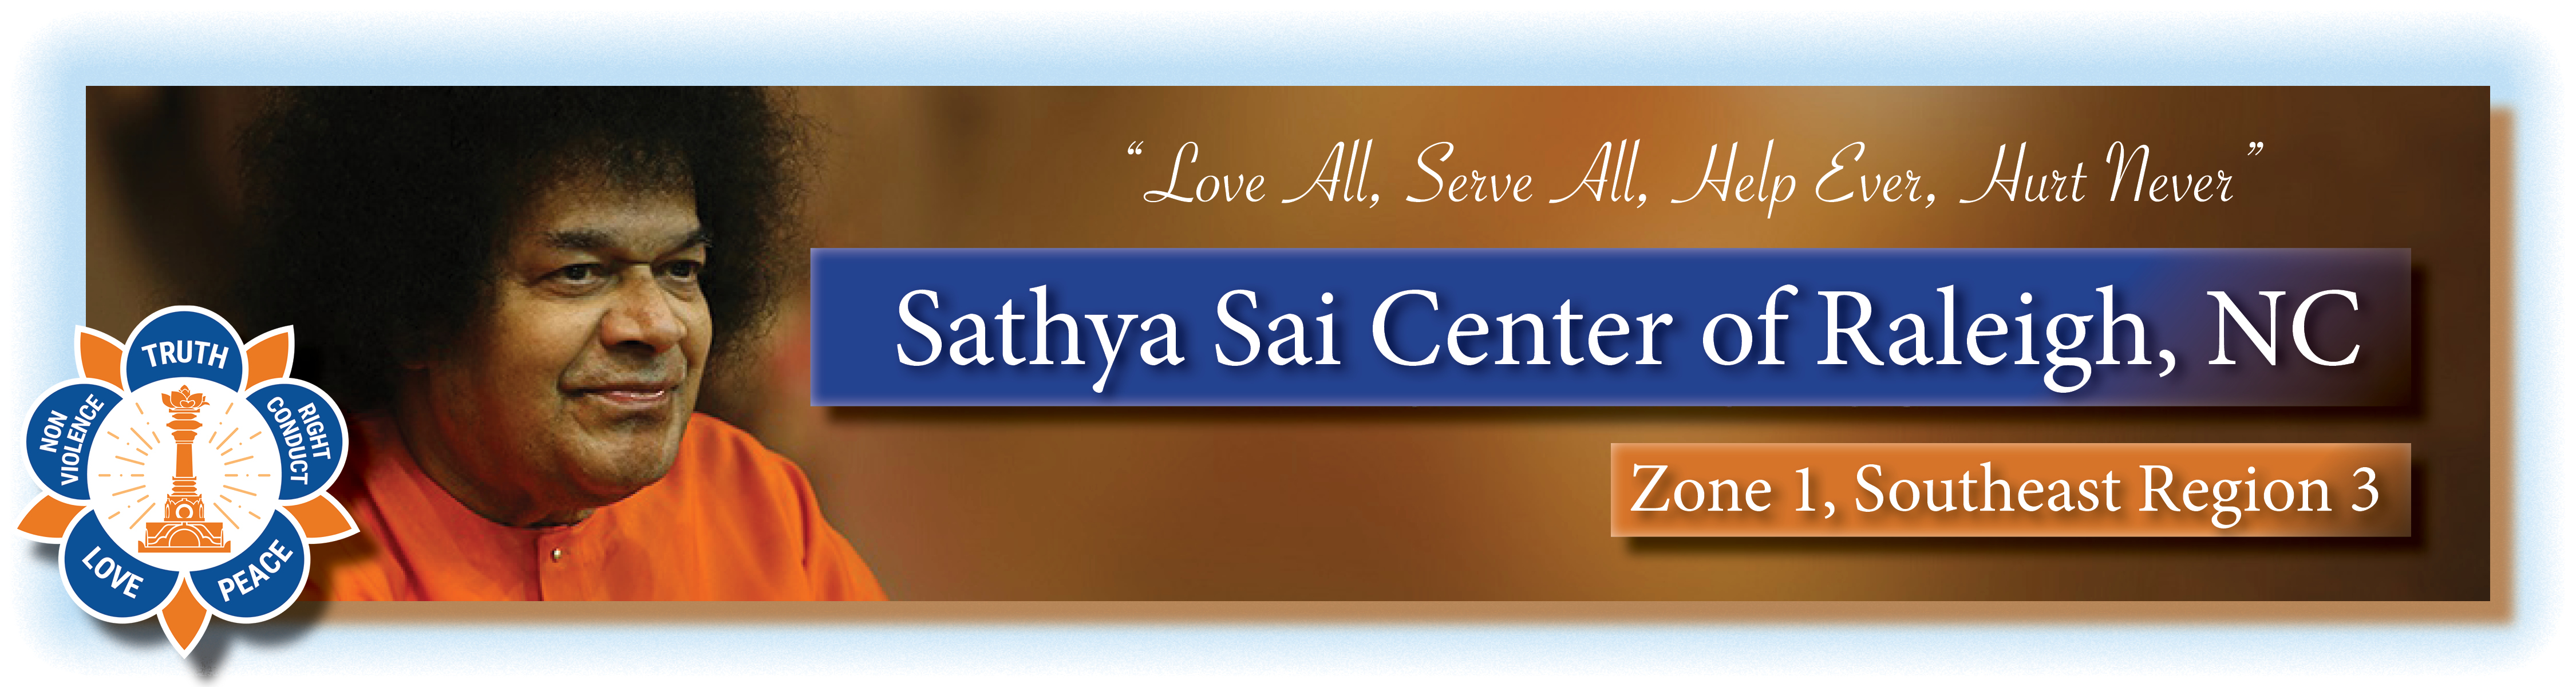 Raleigh Sai Center